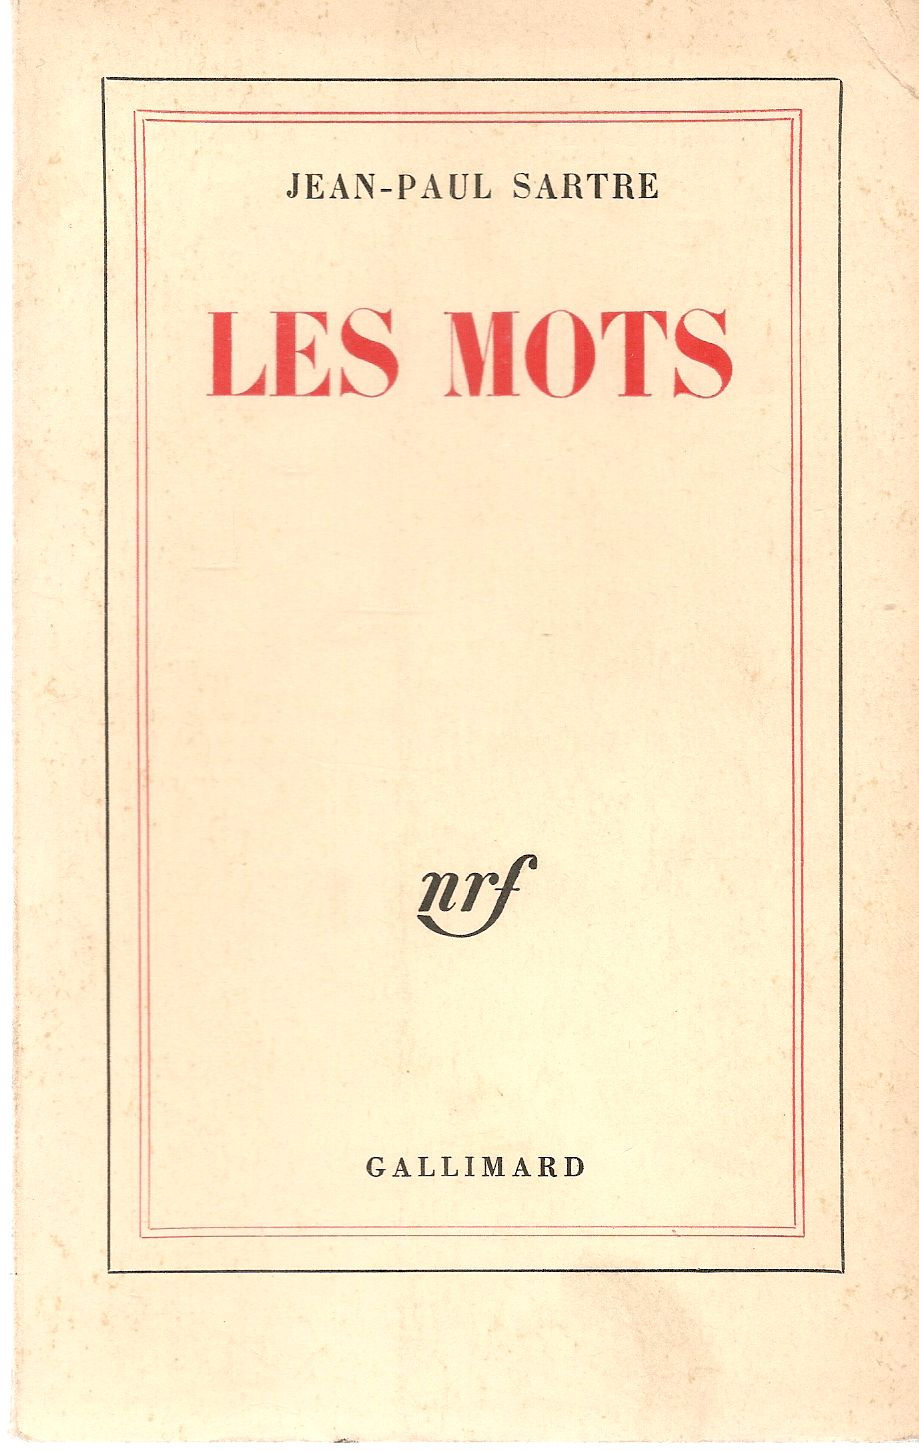 LES MOTS - JEAN-PAUL SARTRE - FRENCH TEXT